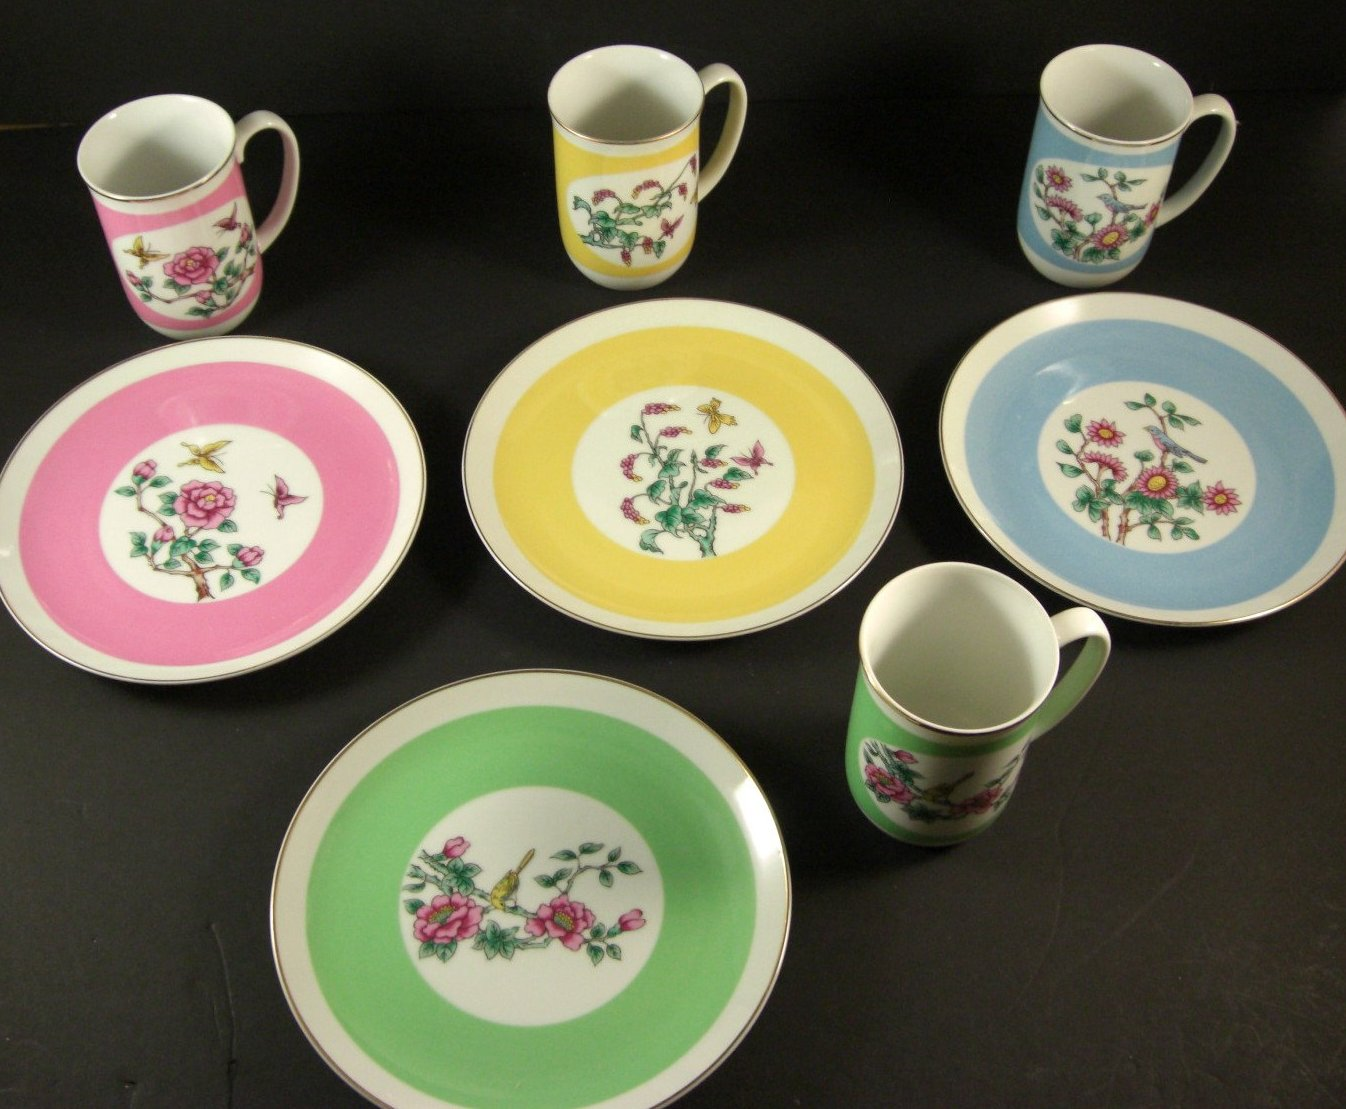 Shafford Porcelain Dessert Service for 4 Coffee Tea Mugs Dessert Plates